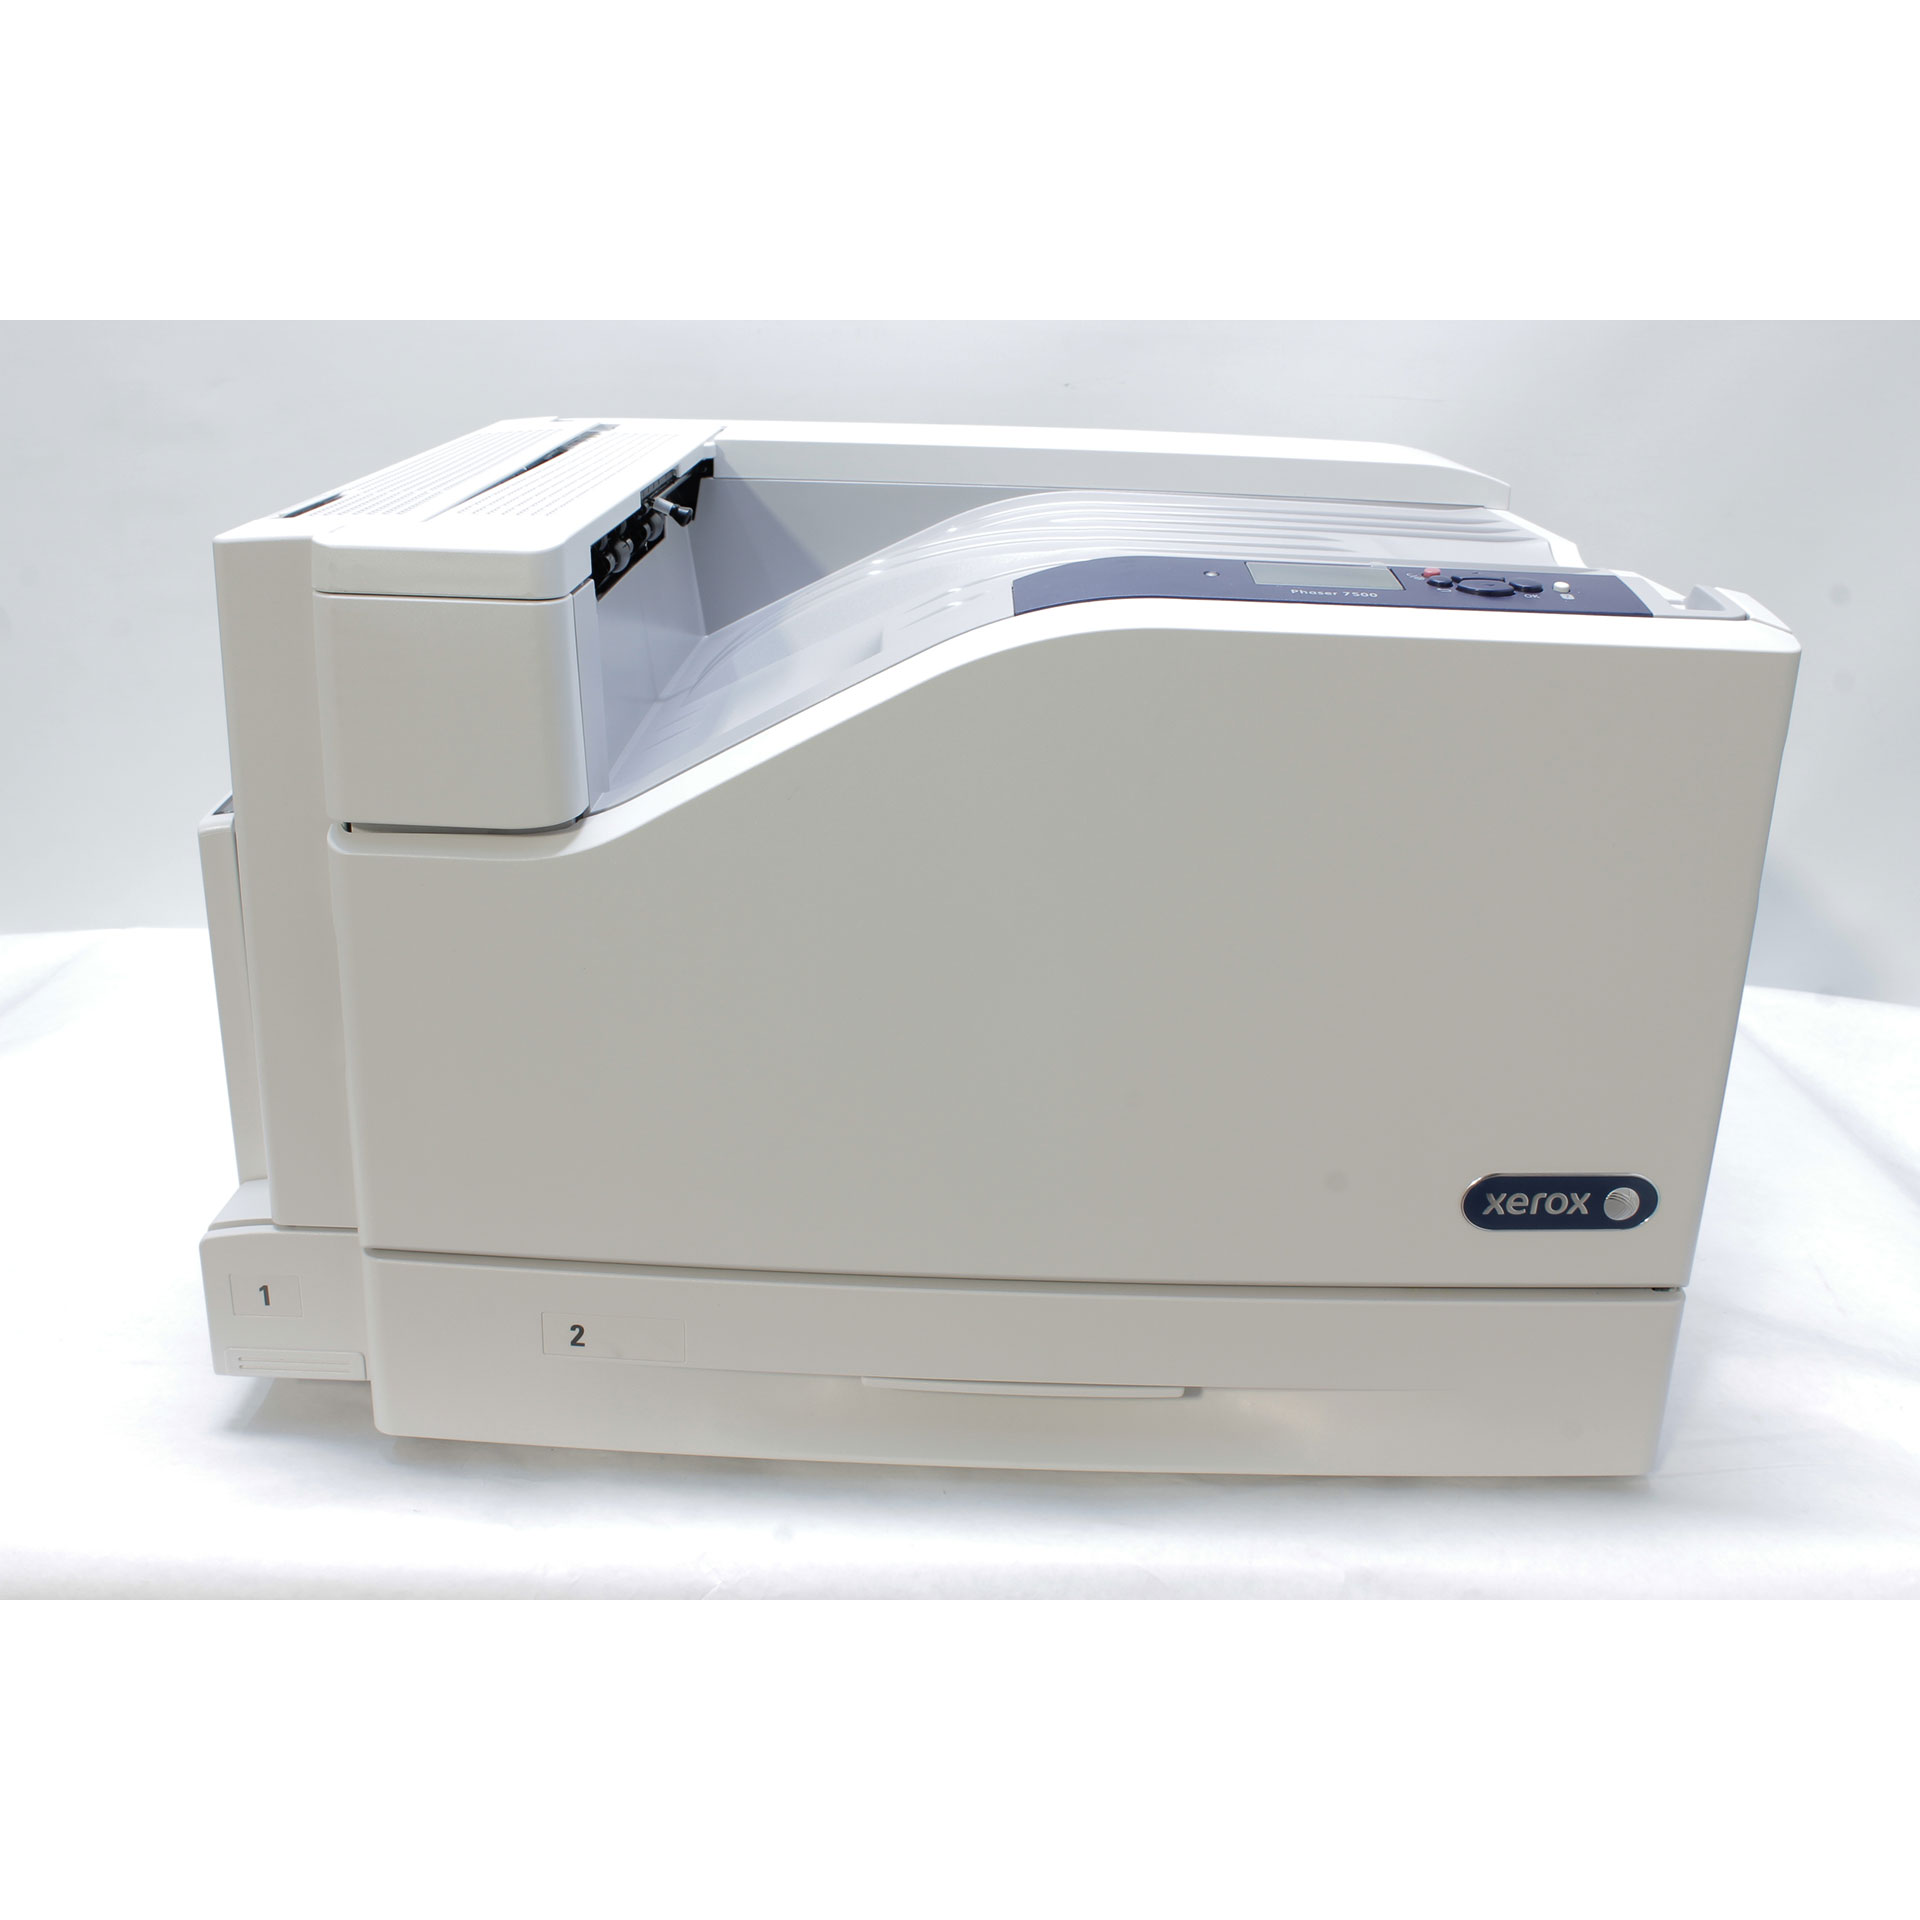 Xerox Phaser 7500/DN Tabloid Network Color Printer (NEW toner)